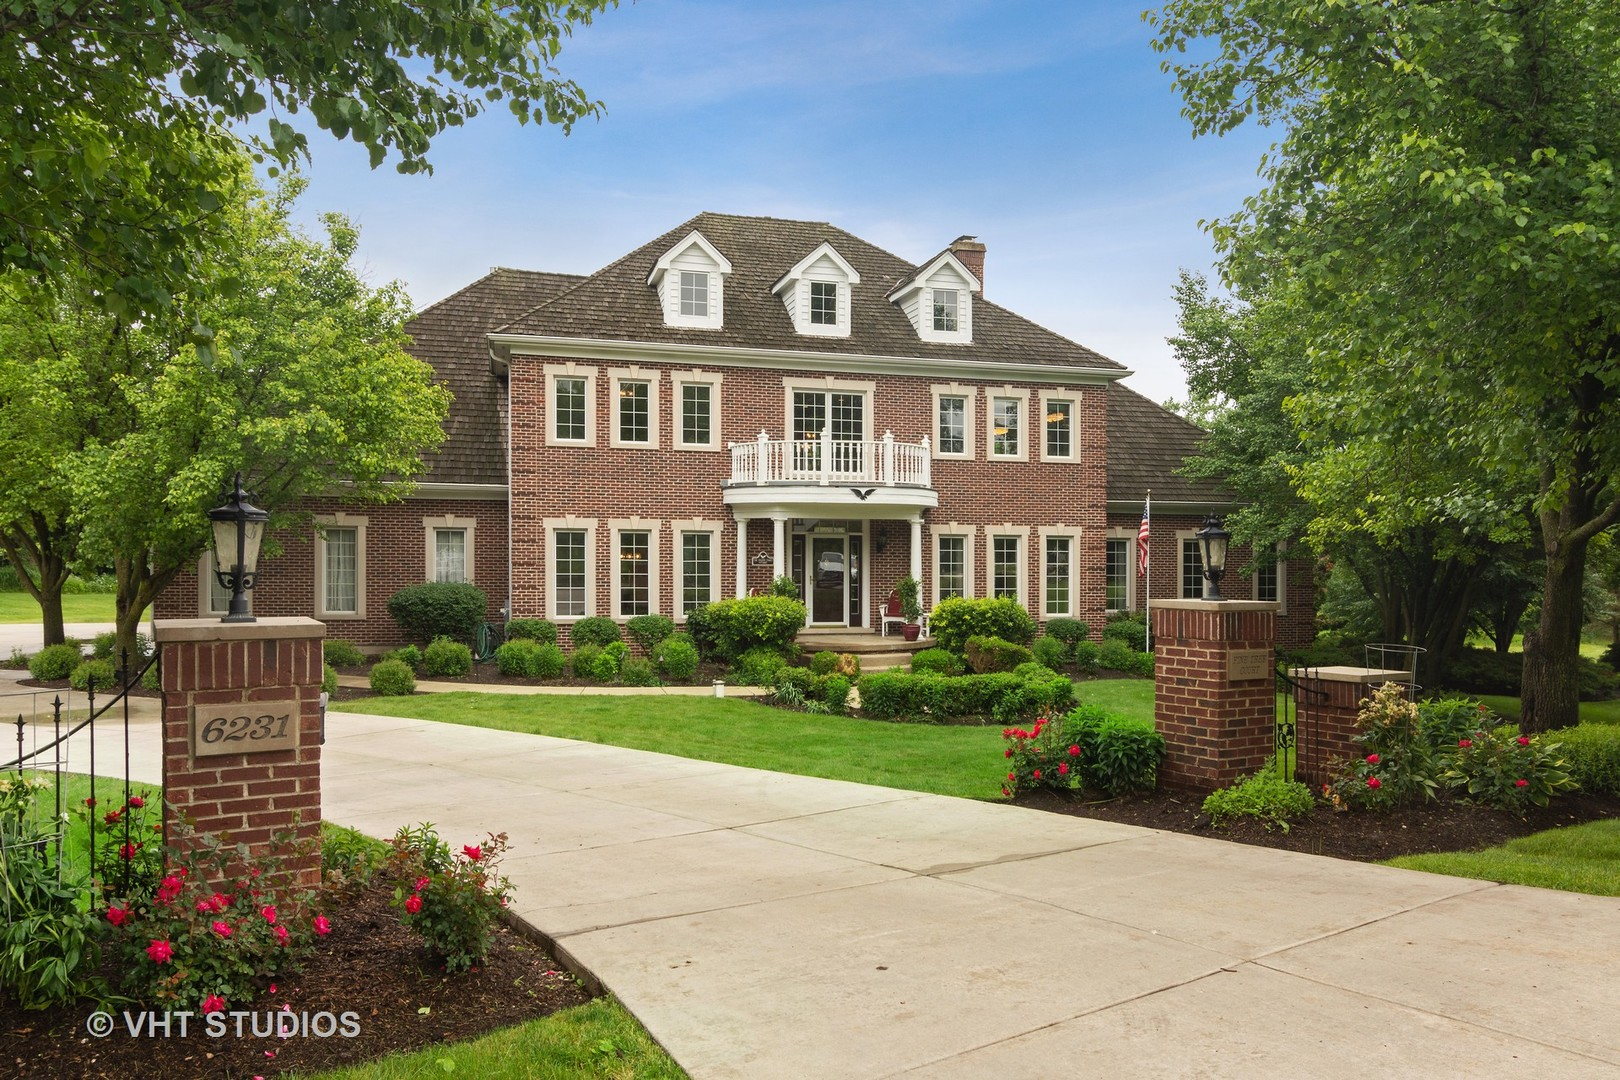 6231 Pine Tree Court, Long Grove, Illinois 60047